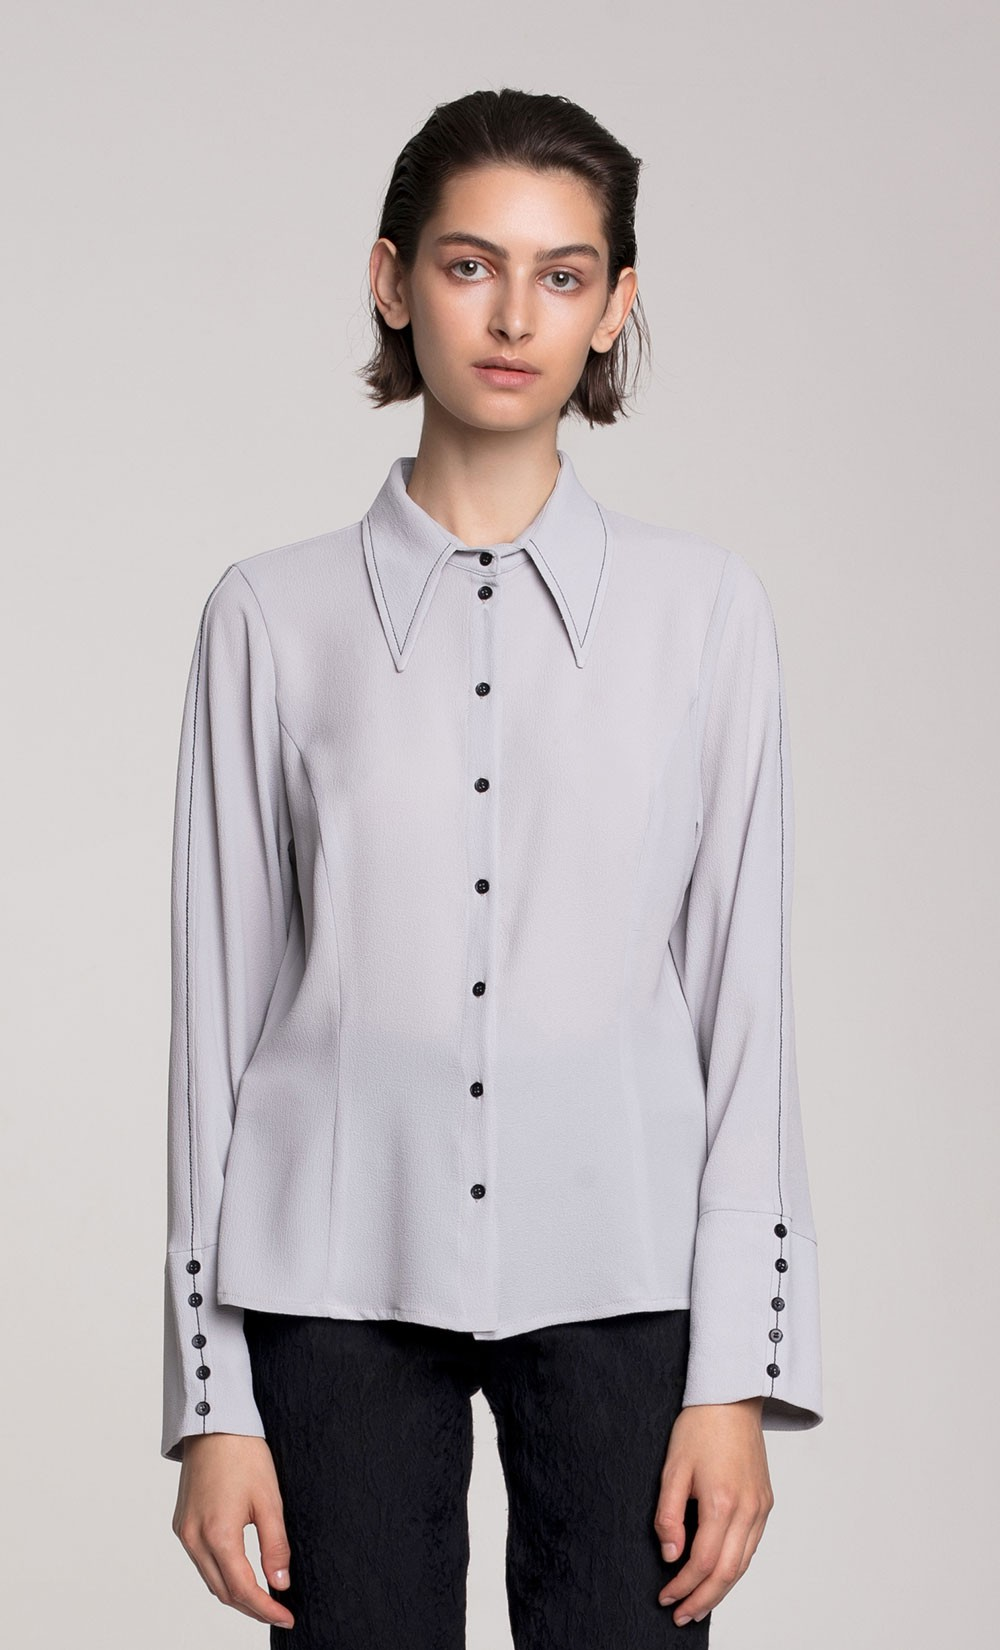 Calimera Blouse